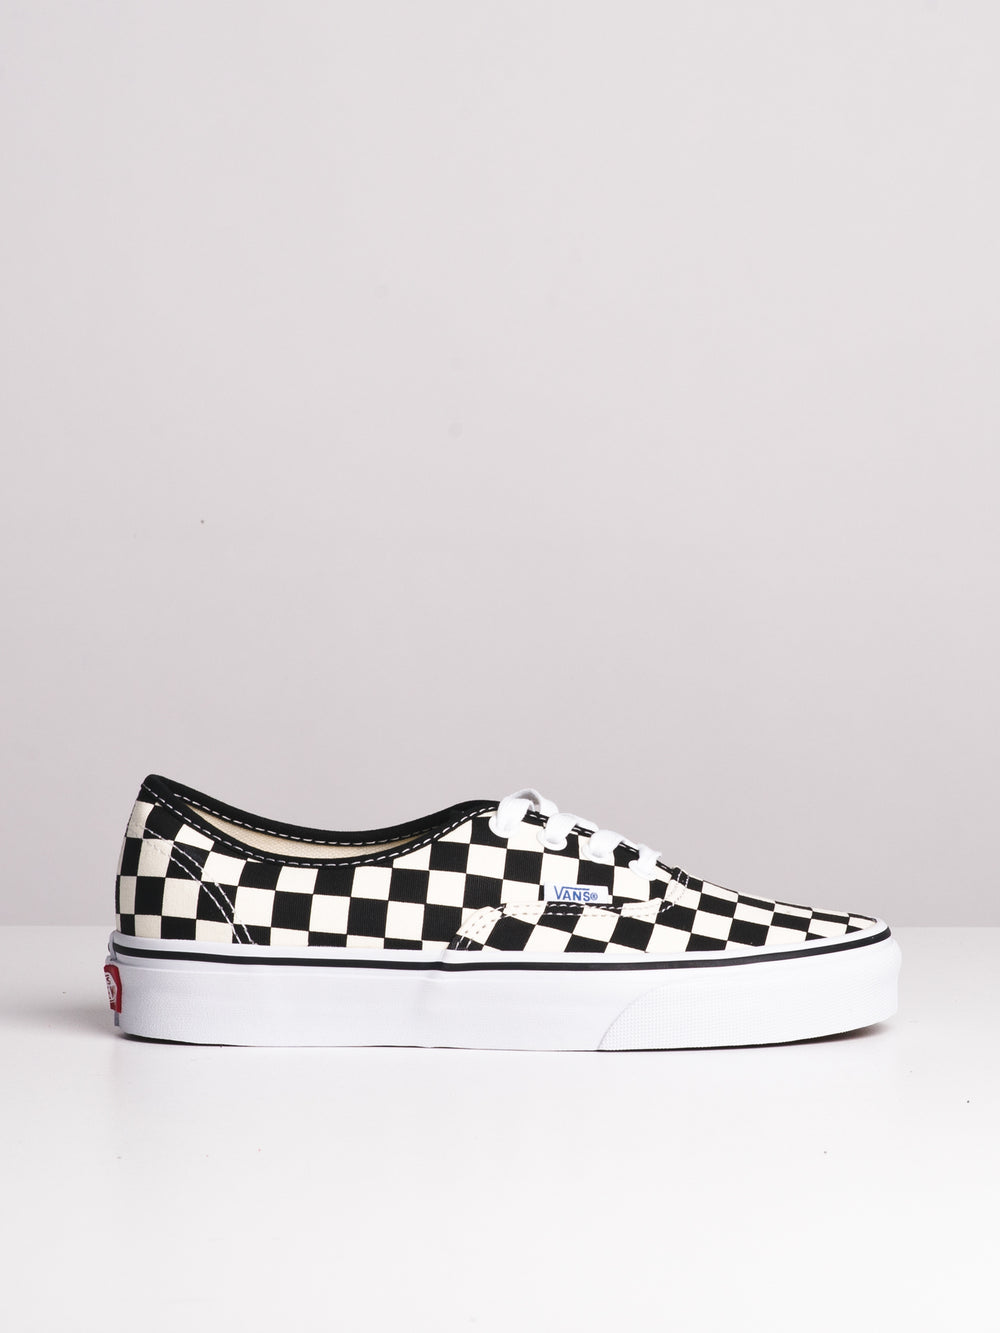 WOMENS AUTHENTIC - GOLDEN COAST